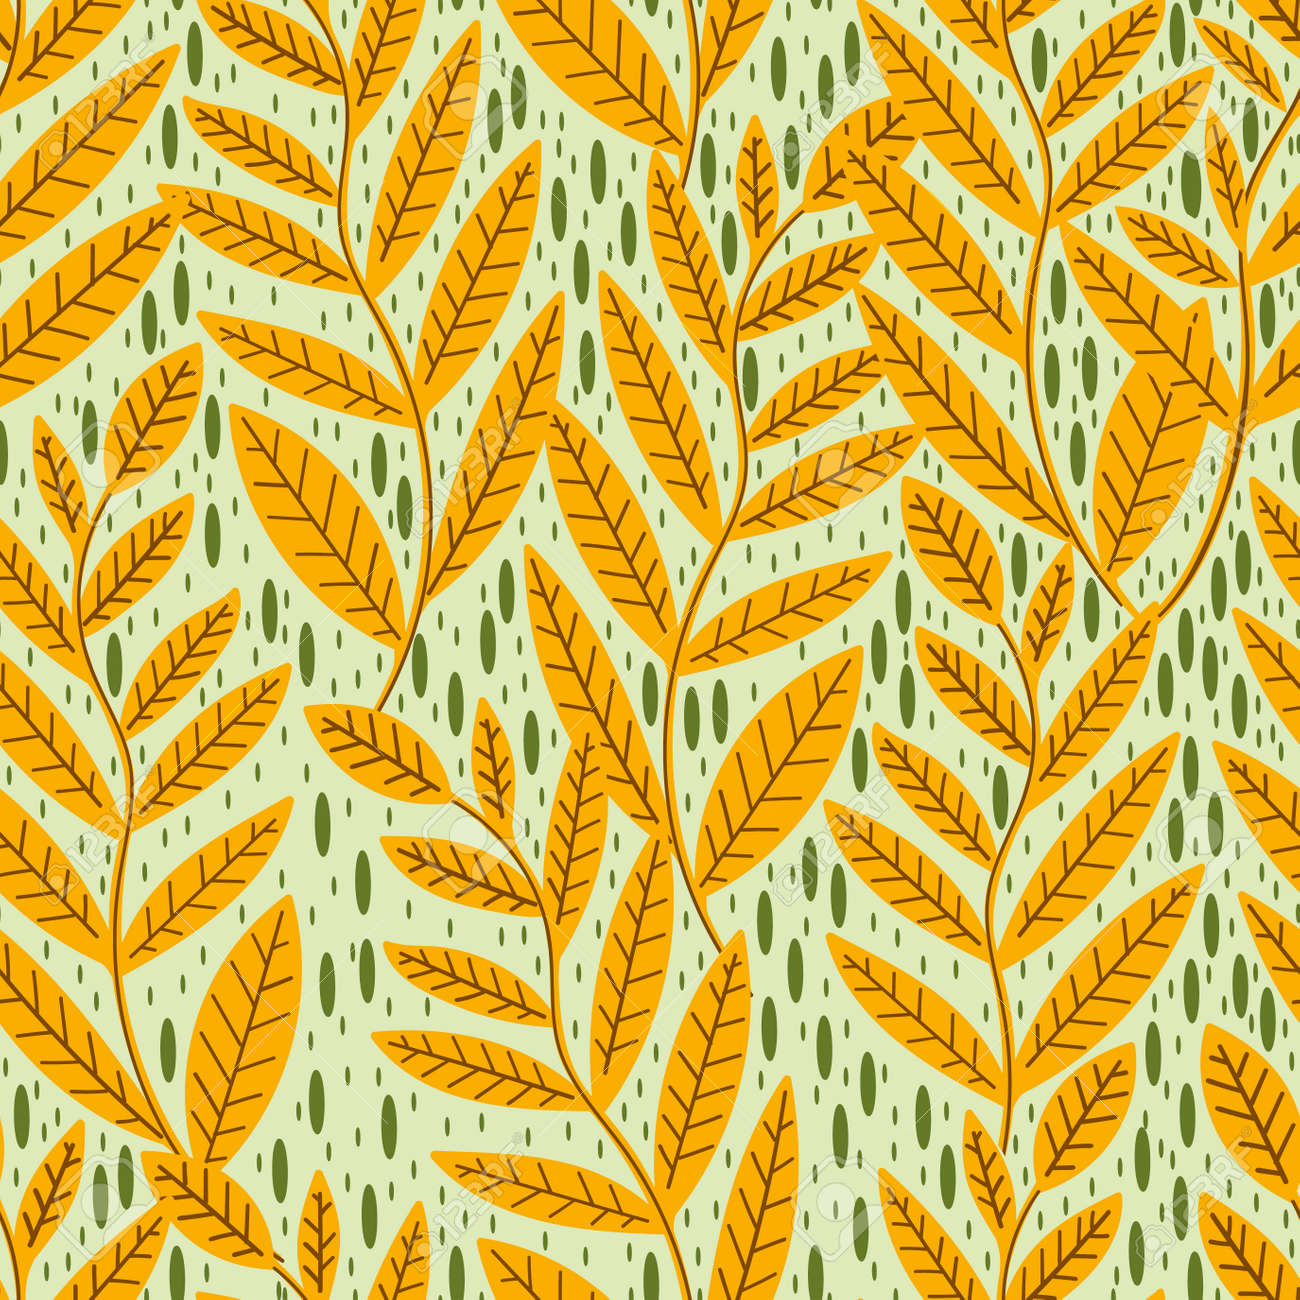 Seamless pattern leaves plant .Floral motif nature abstract print.Modern summer background. - 169556230